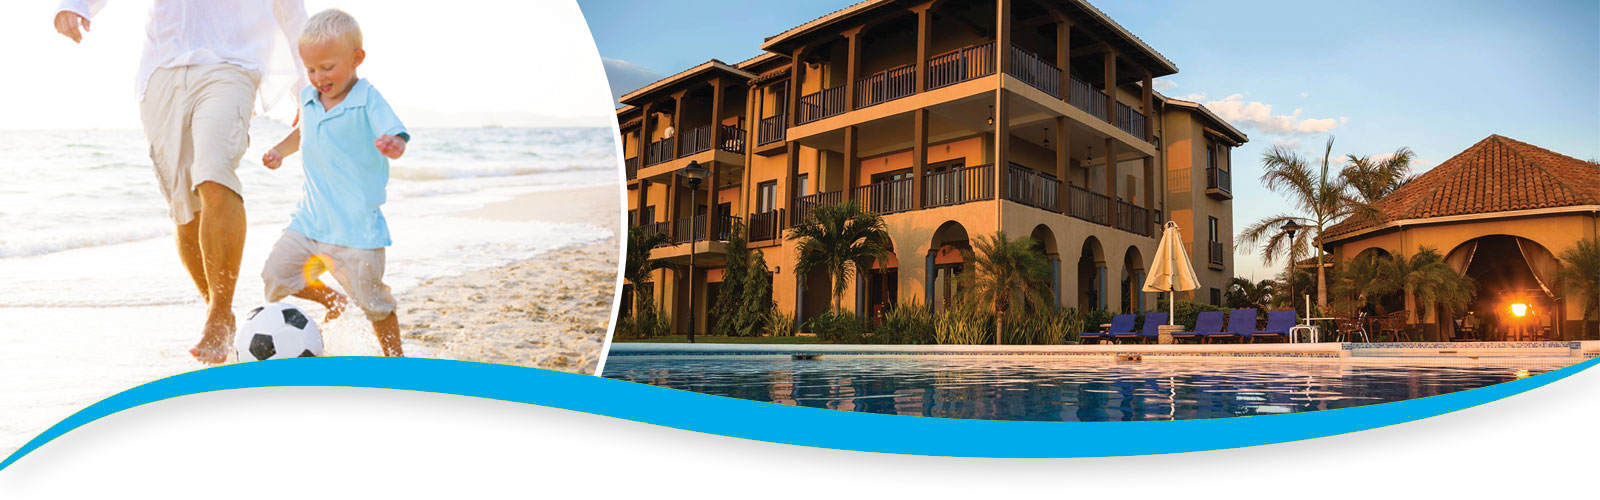 GranPacifica_website_condos.jpg